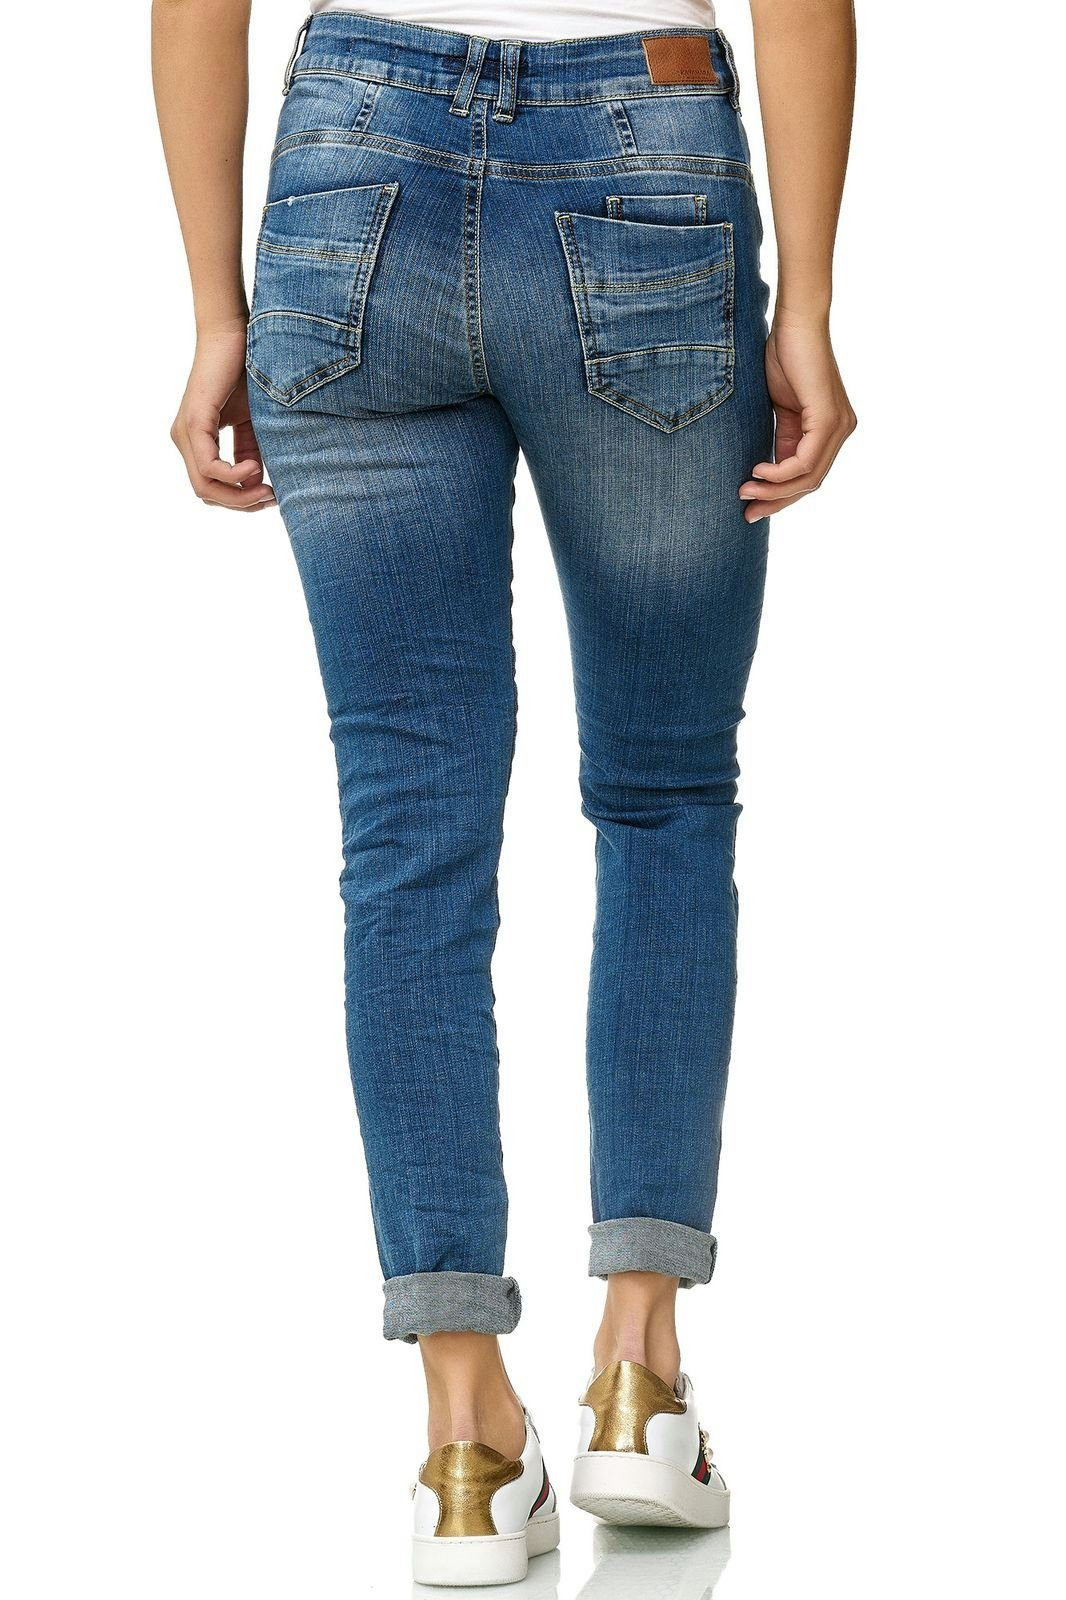 KAYAMARA Jeanshose in Used-Optik